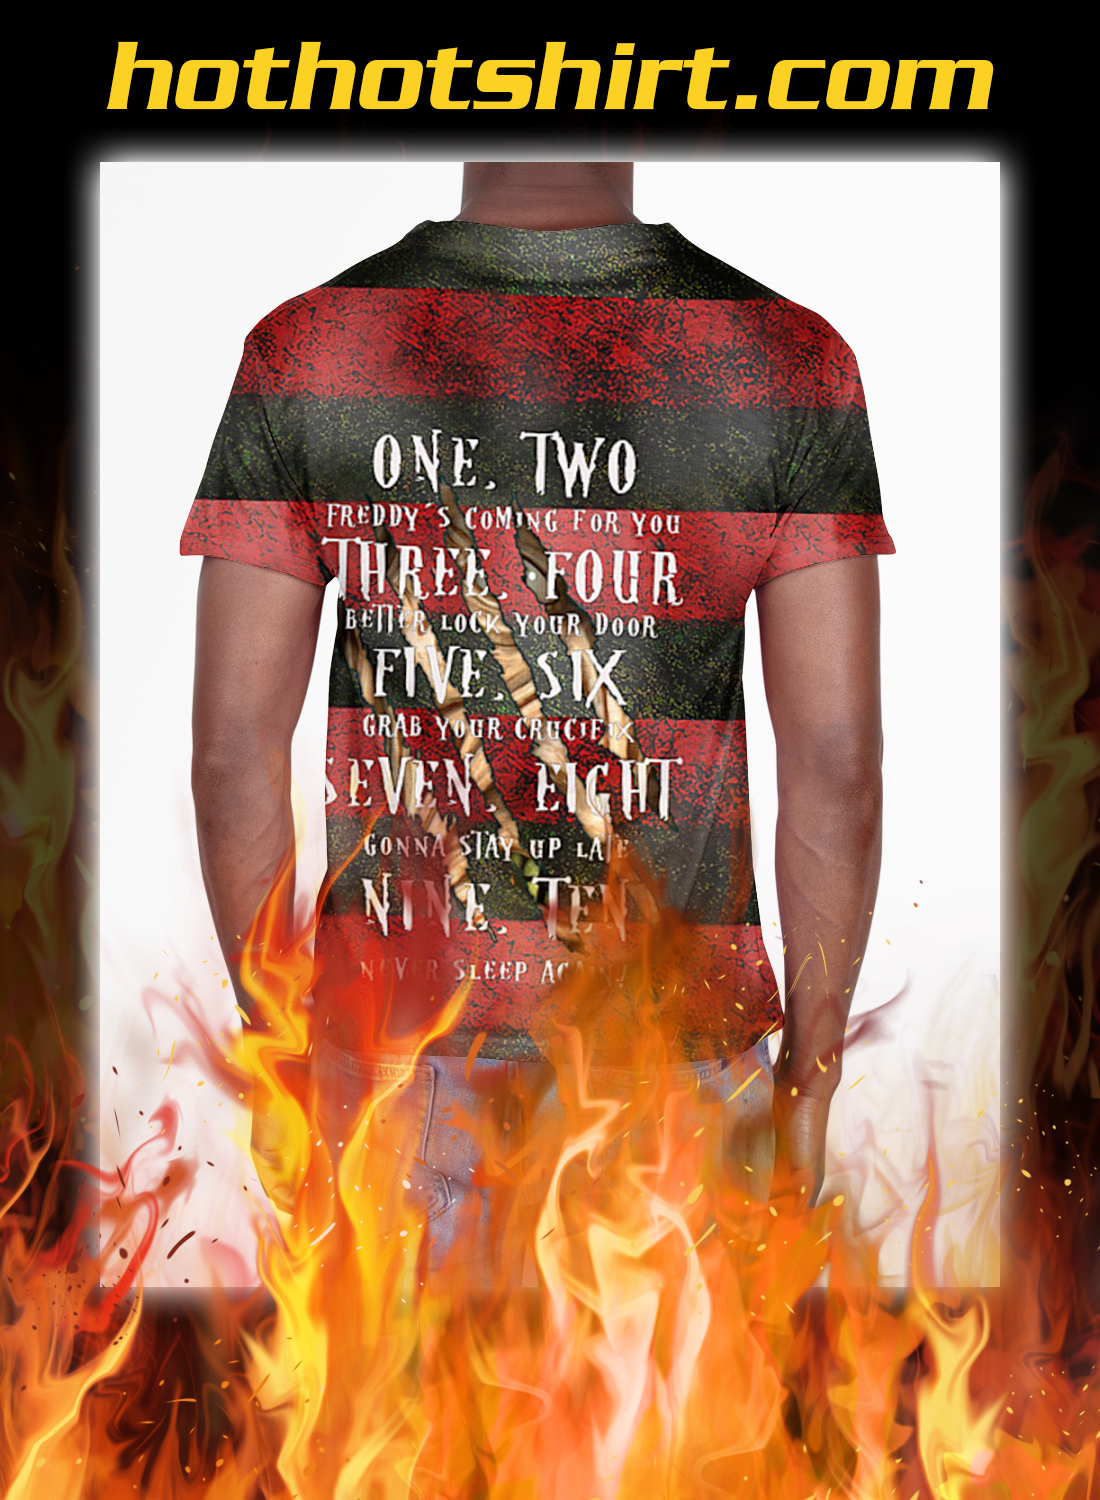 Freddy Krueger sweet dreams one two 3d all over printed t-shirt-pic 2